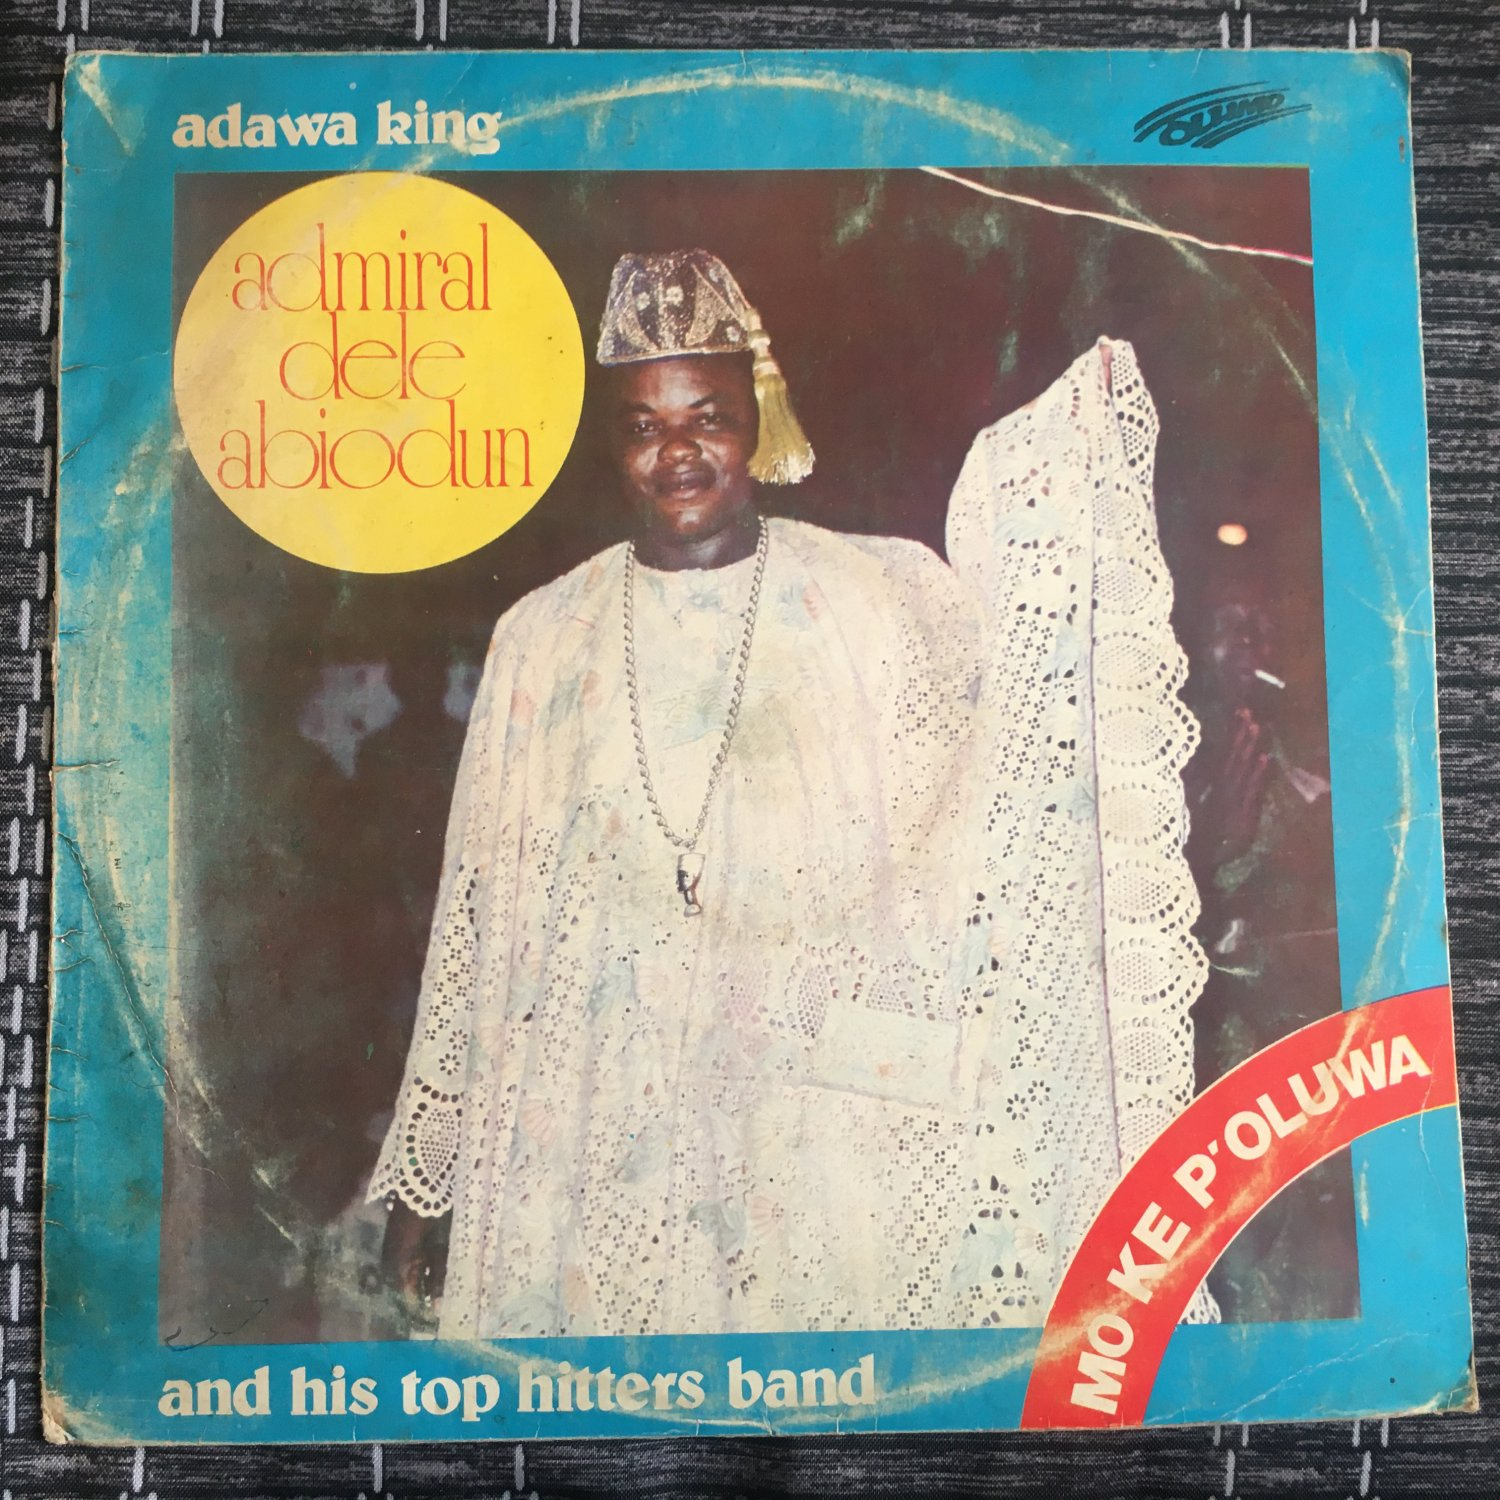 DELE ABIODUN & HIS TOP HITTERS BAND LP mo ke p'oluwa NIGERIA mp3 LISTEN